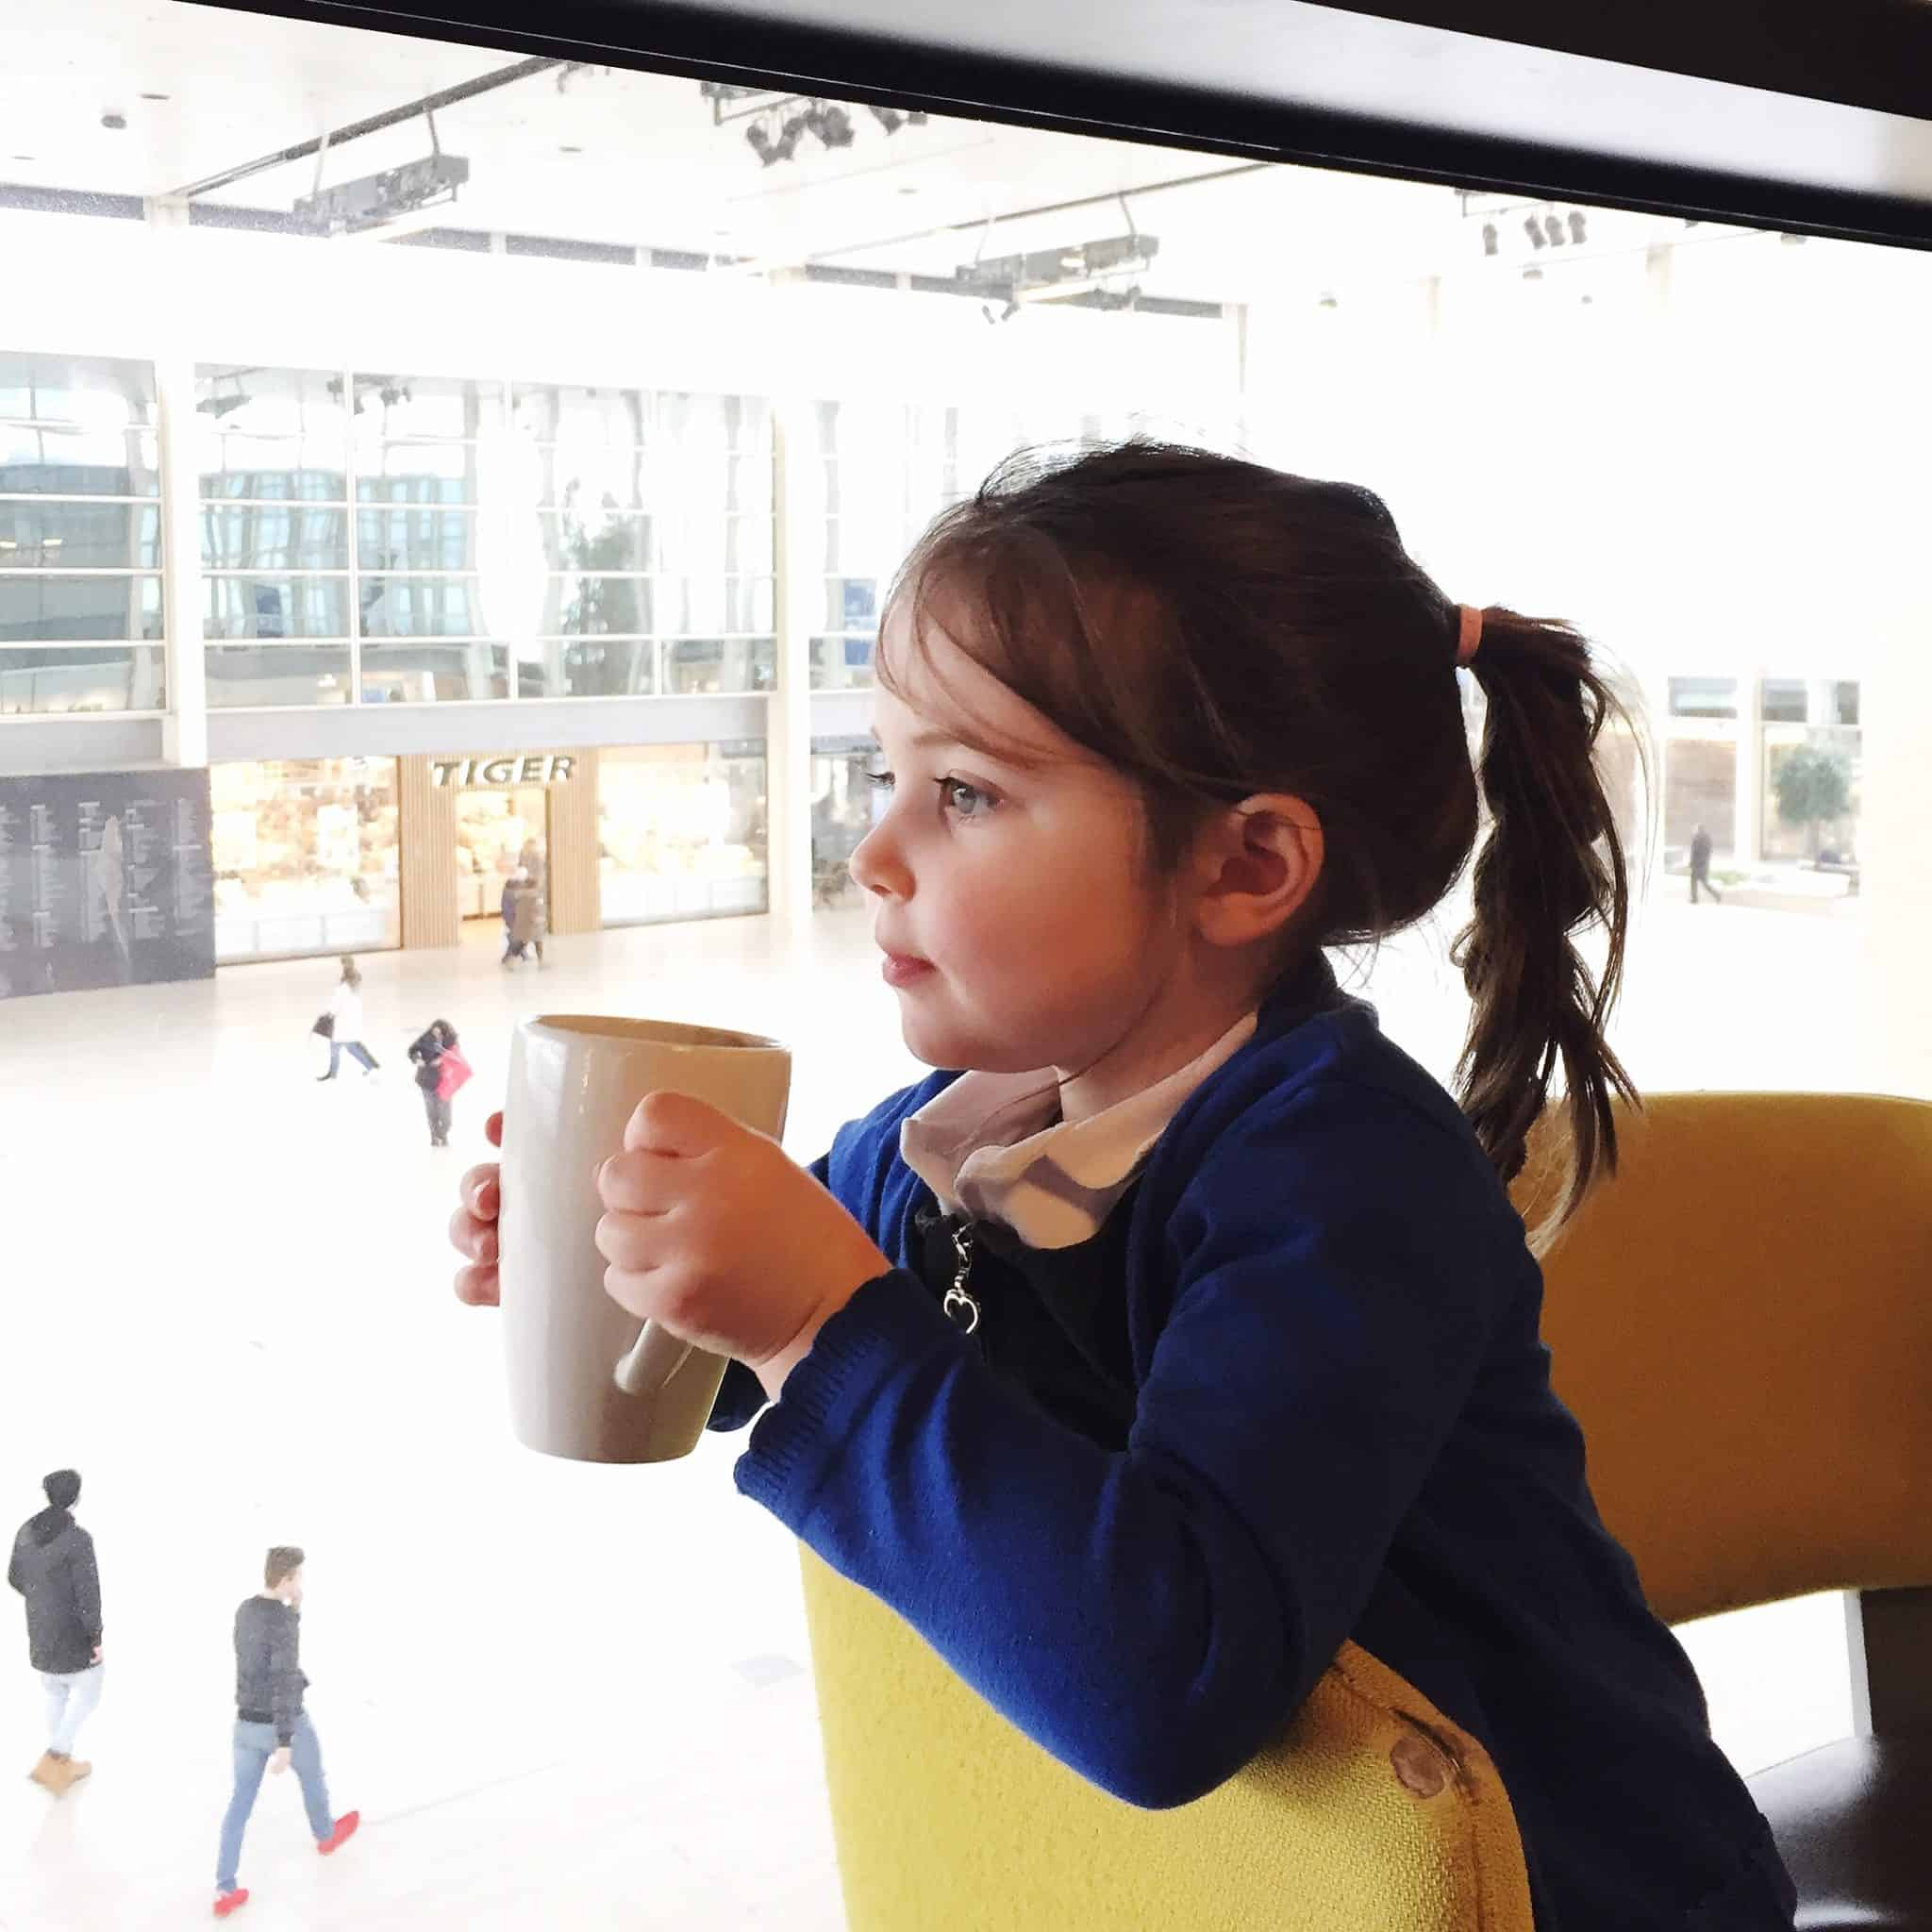 Thea drinking hot chocolate